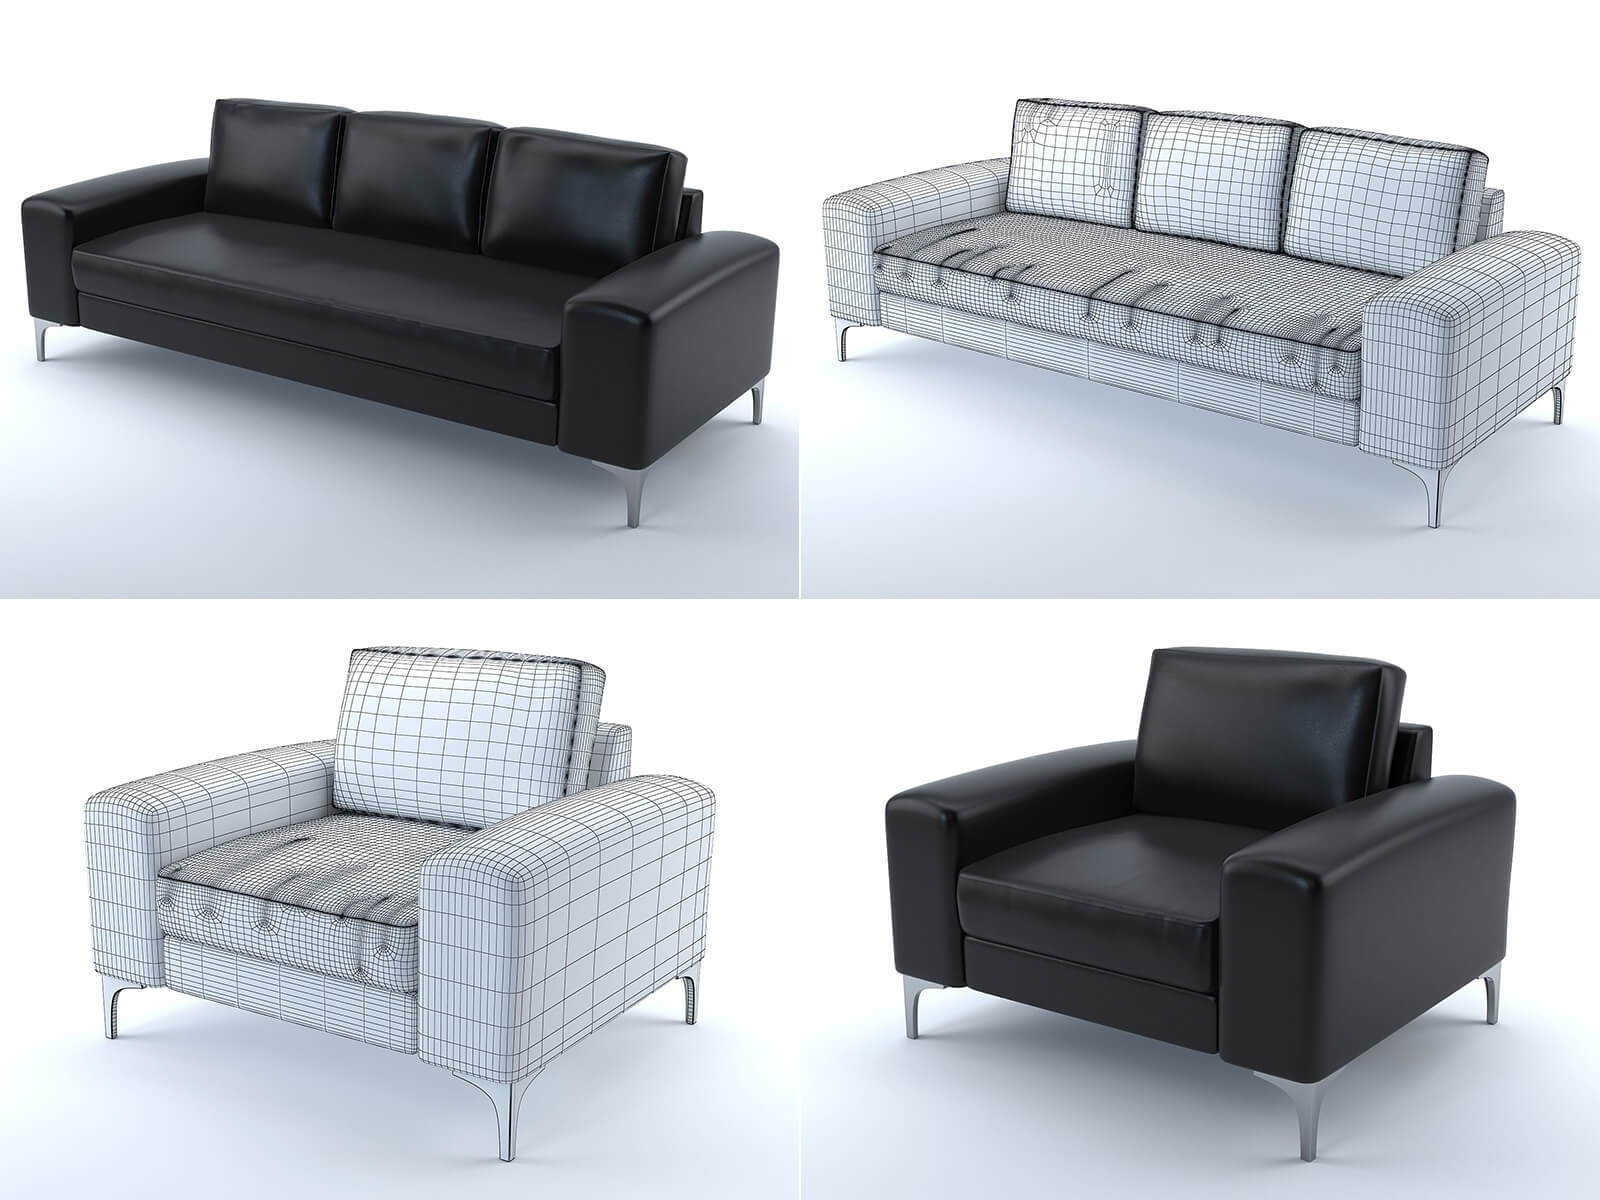 Vittorio sofa and armchair (black leather)